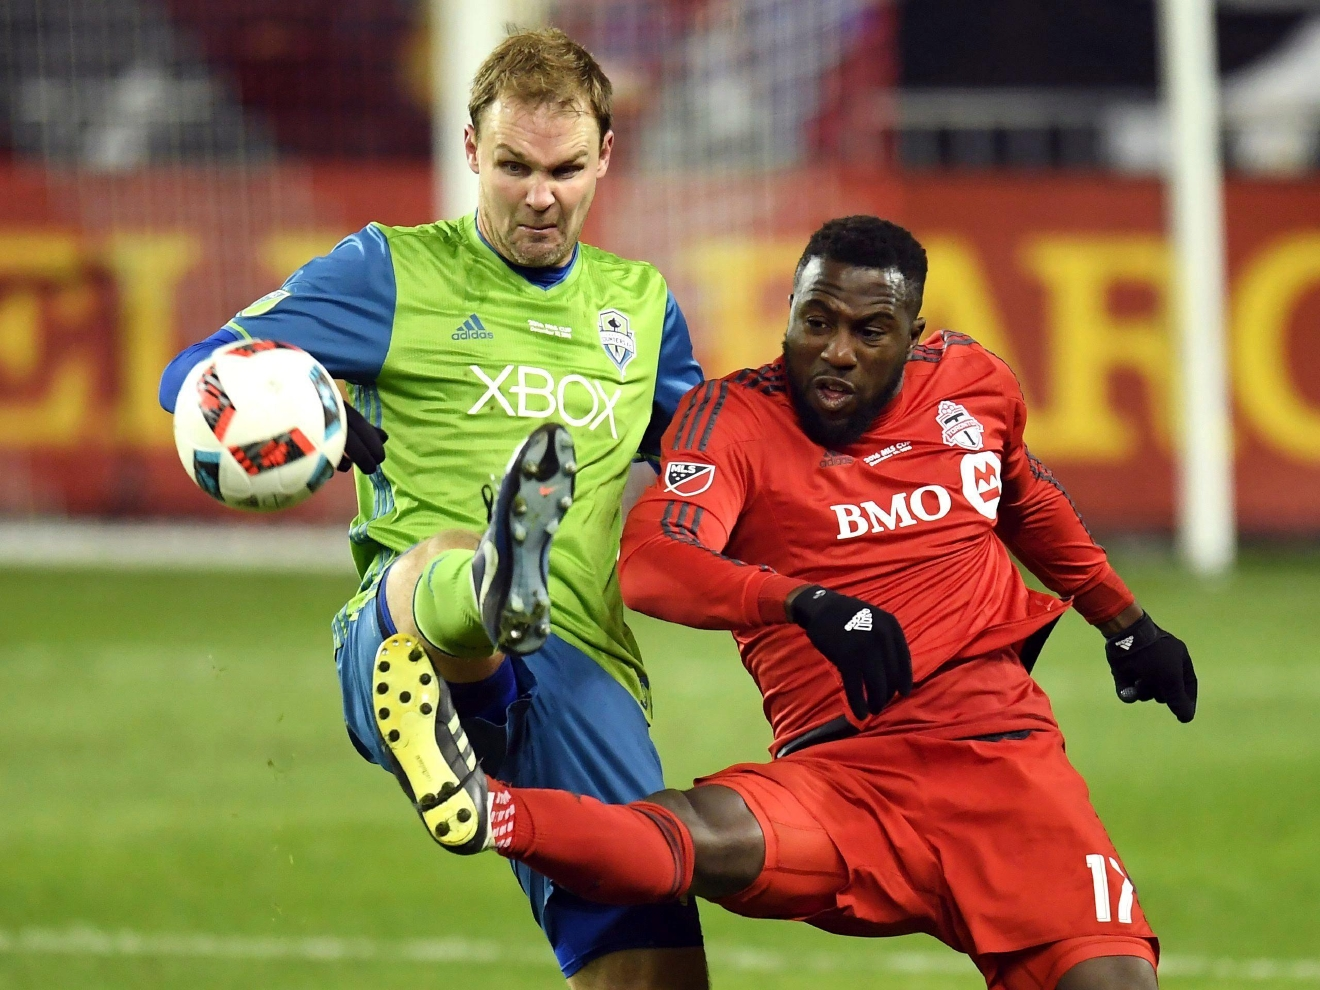 Seattle Sounders defender Chad Marshall, left, and Toronto FC forward Jozy Altidore (17) battle for the ball during second-half MLS Cup final soccer action in Toronto, Saturday, Dec. 10, 2016. (Franks GunnThe Canadian Press via AP)